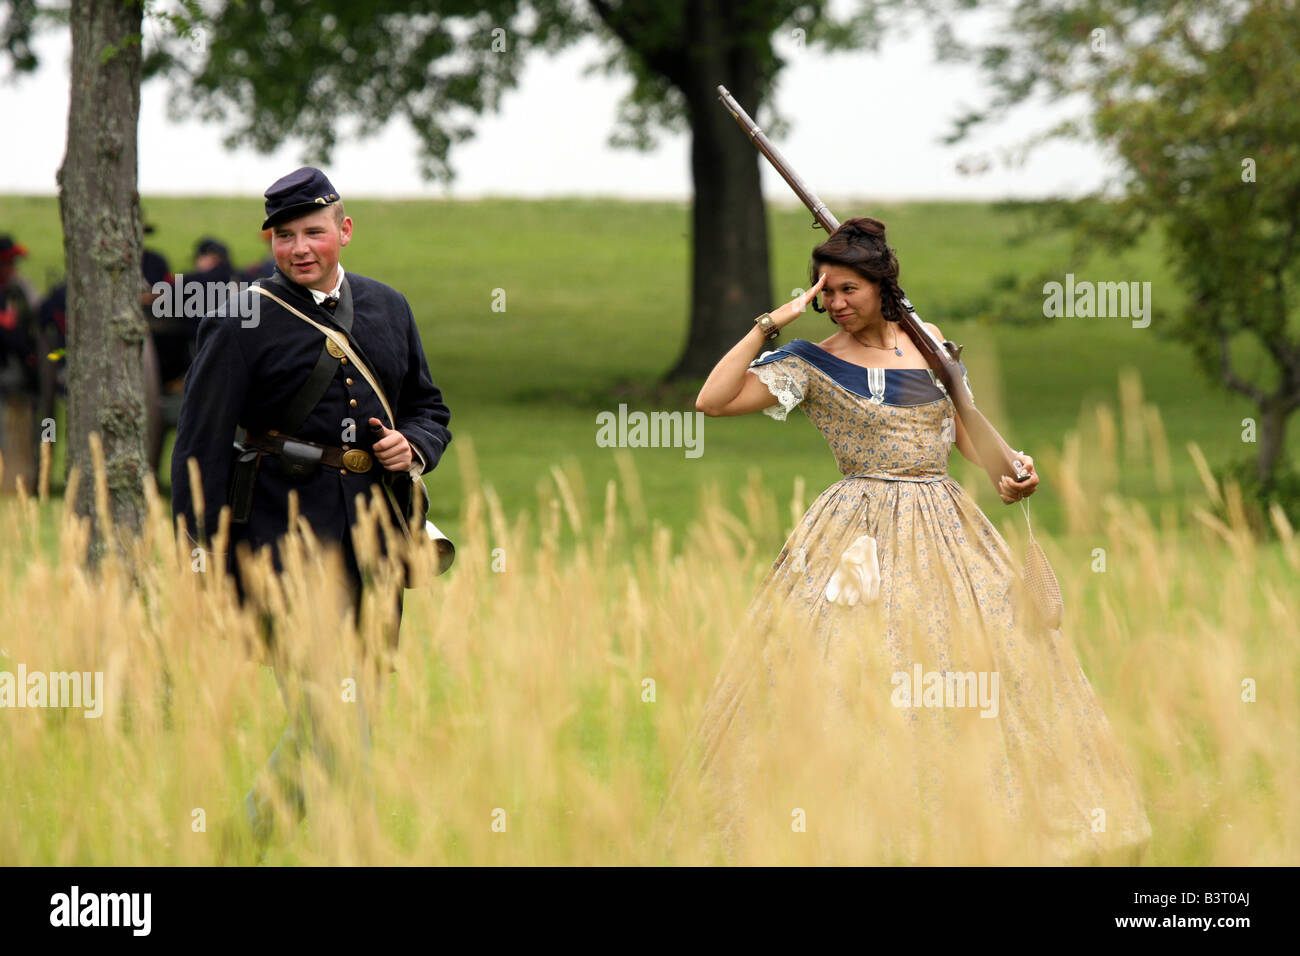 A young women flirtingly saluting a union soldier at a Civil War Encampment Reenactment Stock Photo